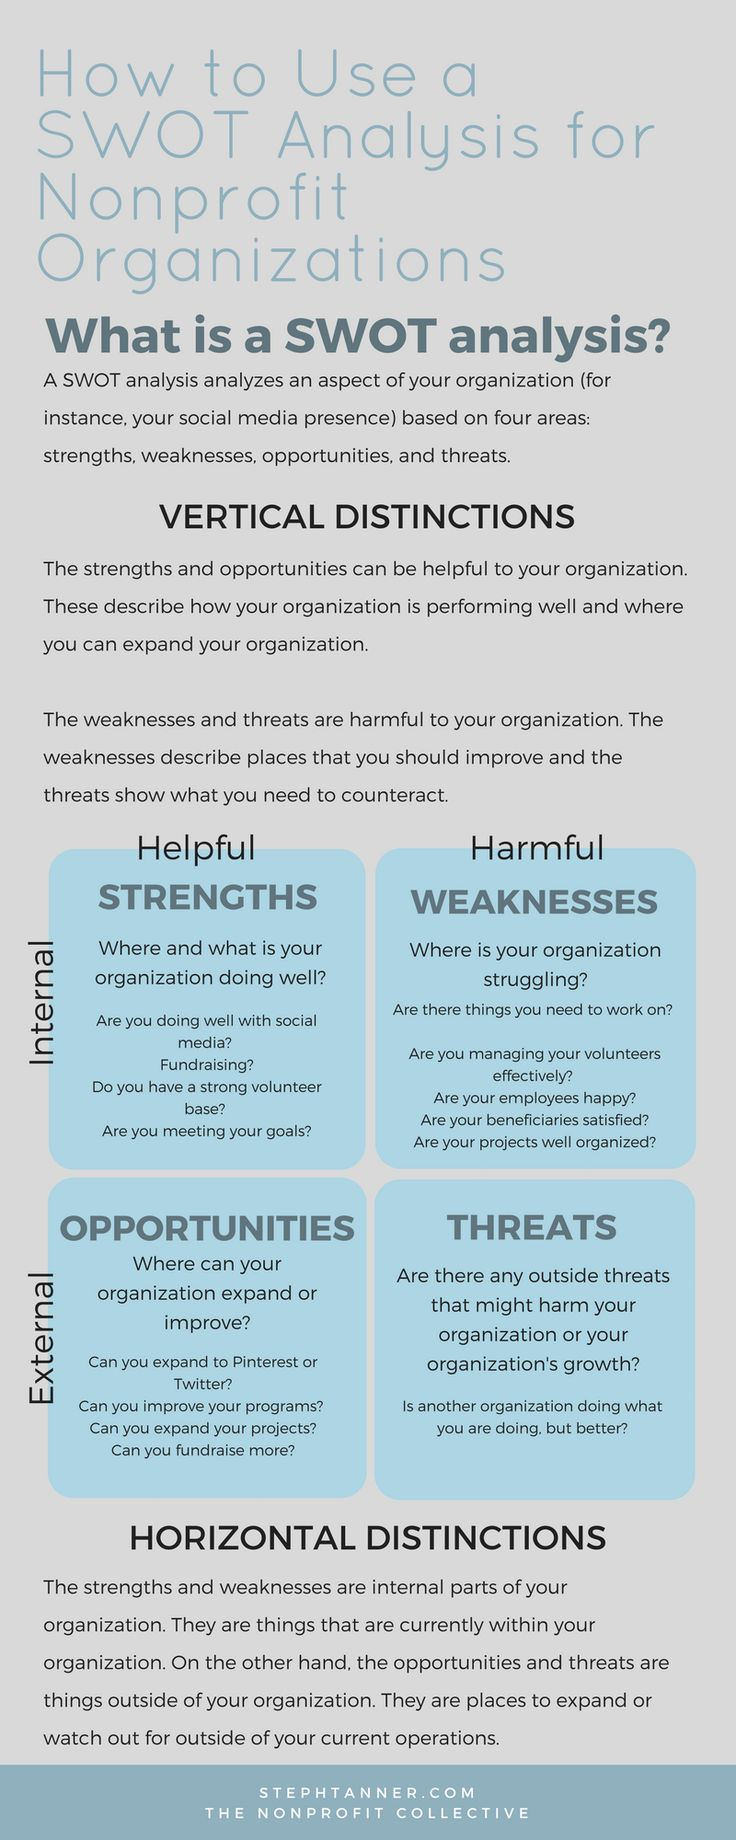 17 best ideas about swot analysis strategic a swot analysis analyzes an aspect of your organization based on four areas strengths